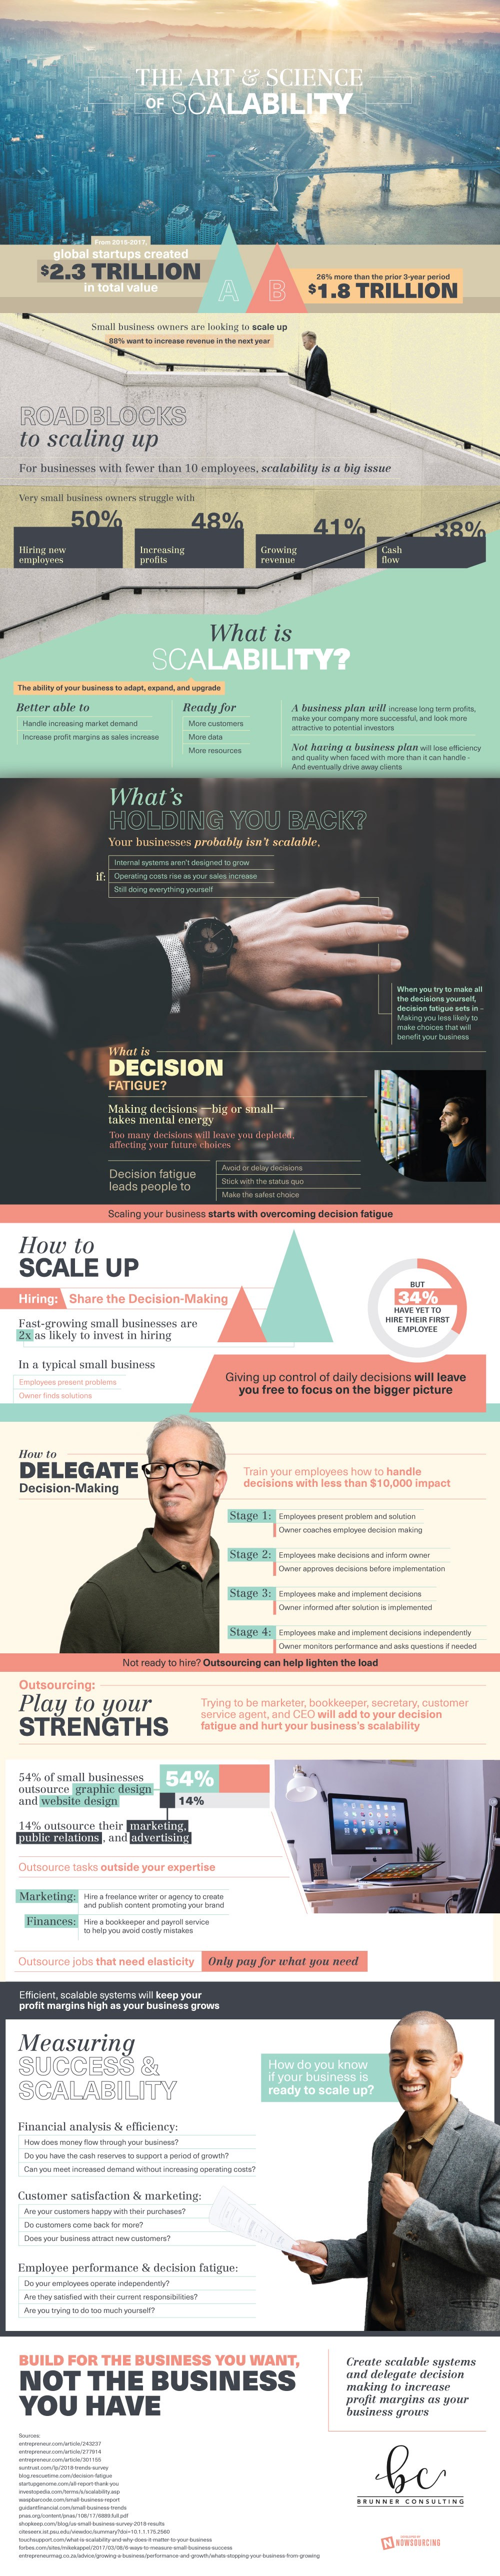 The Business Scalability Infographic